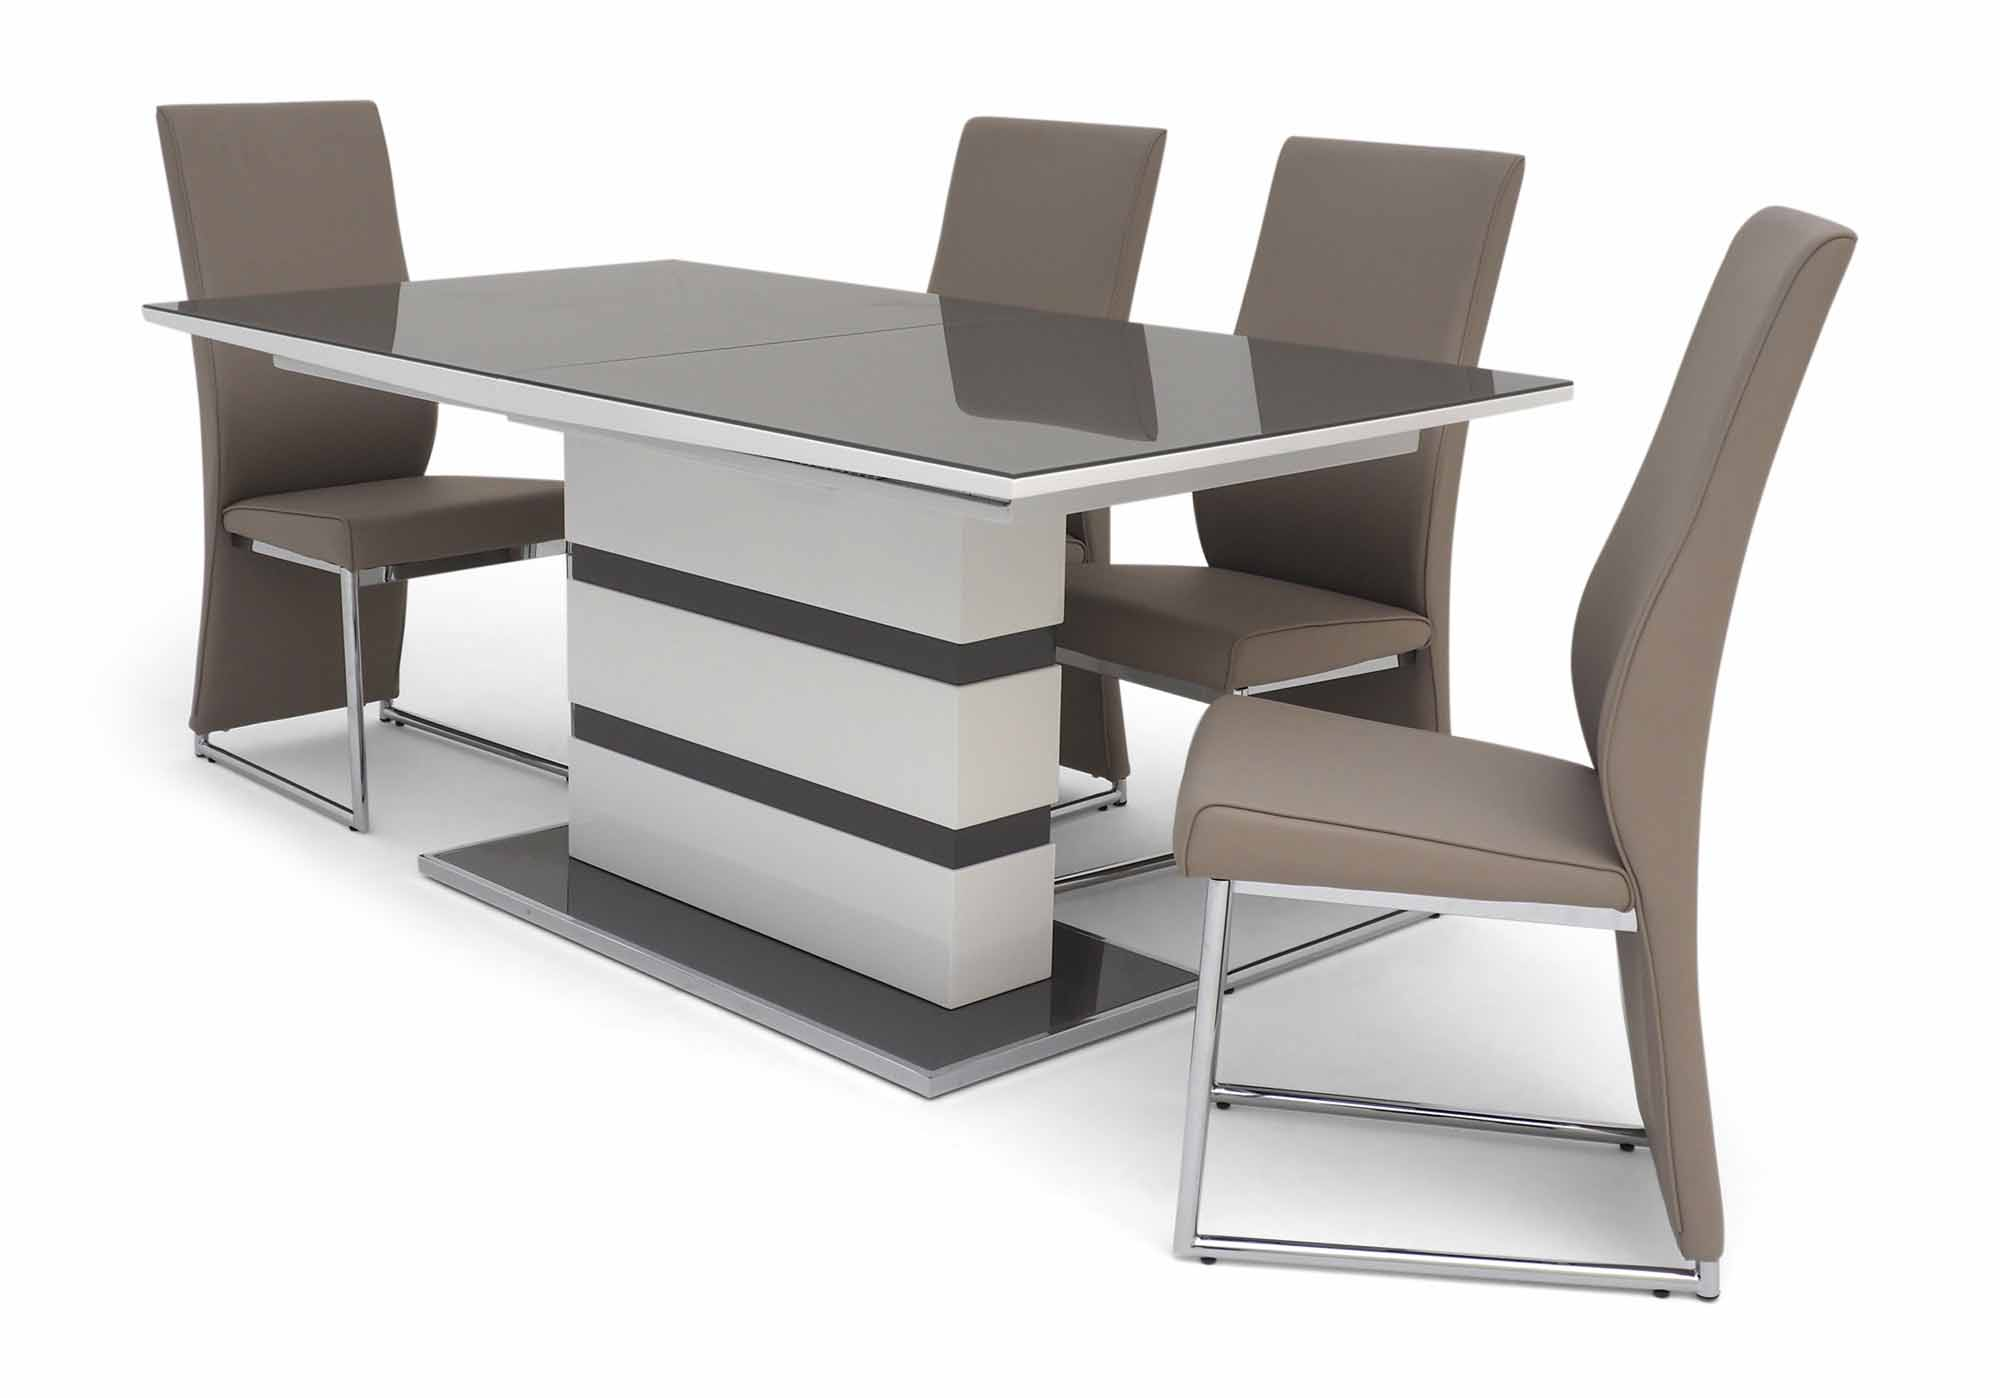 https://www.firstfurniture.co.uk/pub/media/catalog/product/a/r/armano_table_remo_chair_taupe_close_1_side_1.jpg